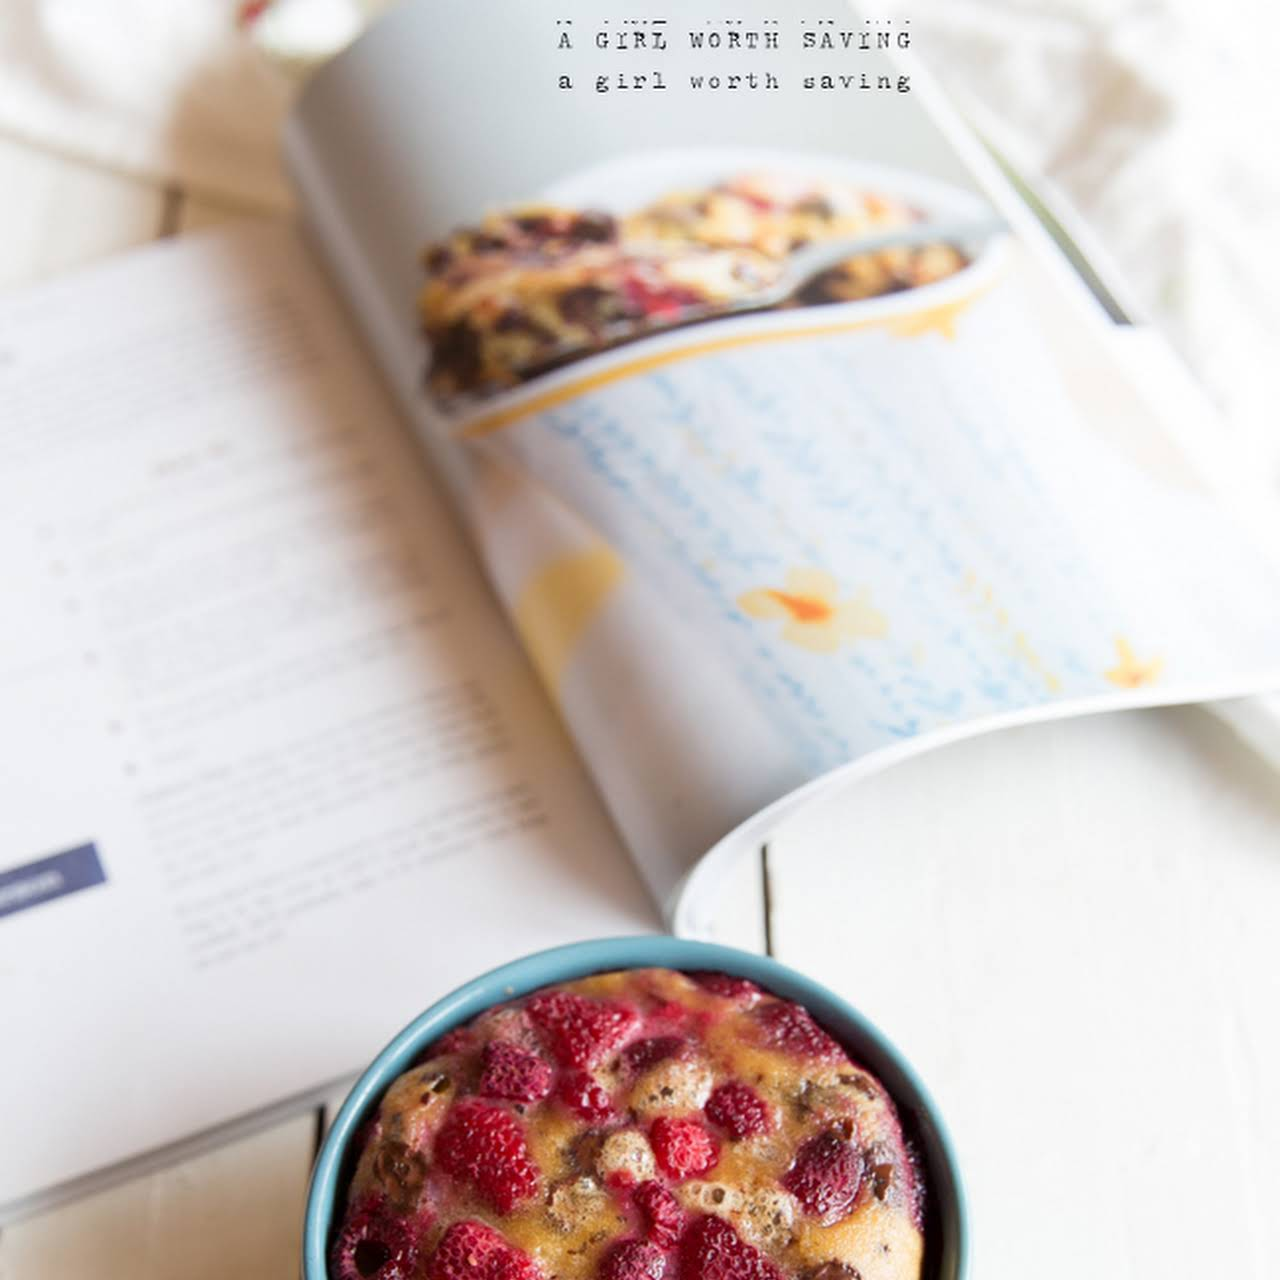 Paleo Raspberry Mug Cake and Meal Planning  not far off from A Budget